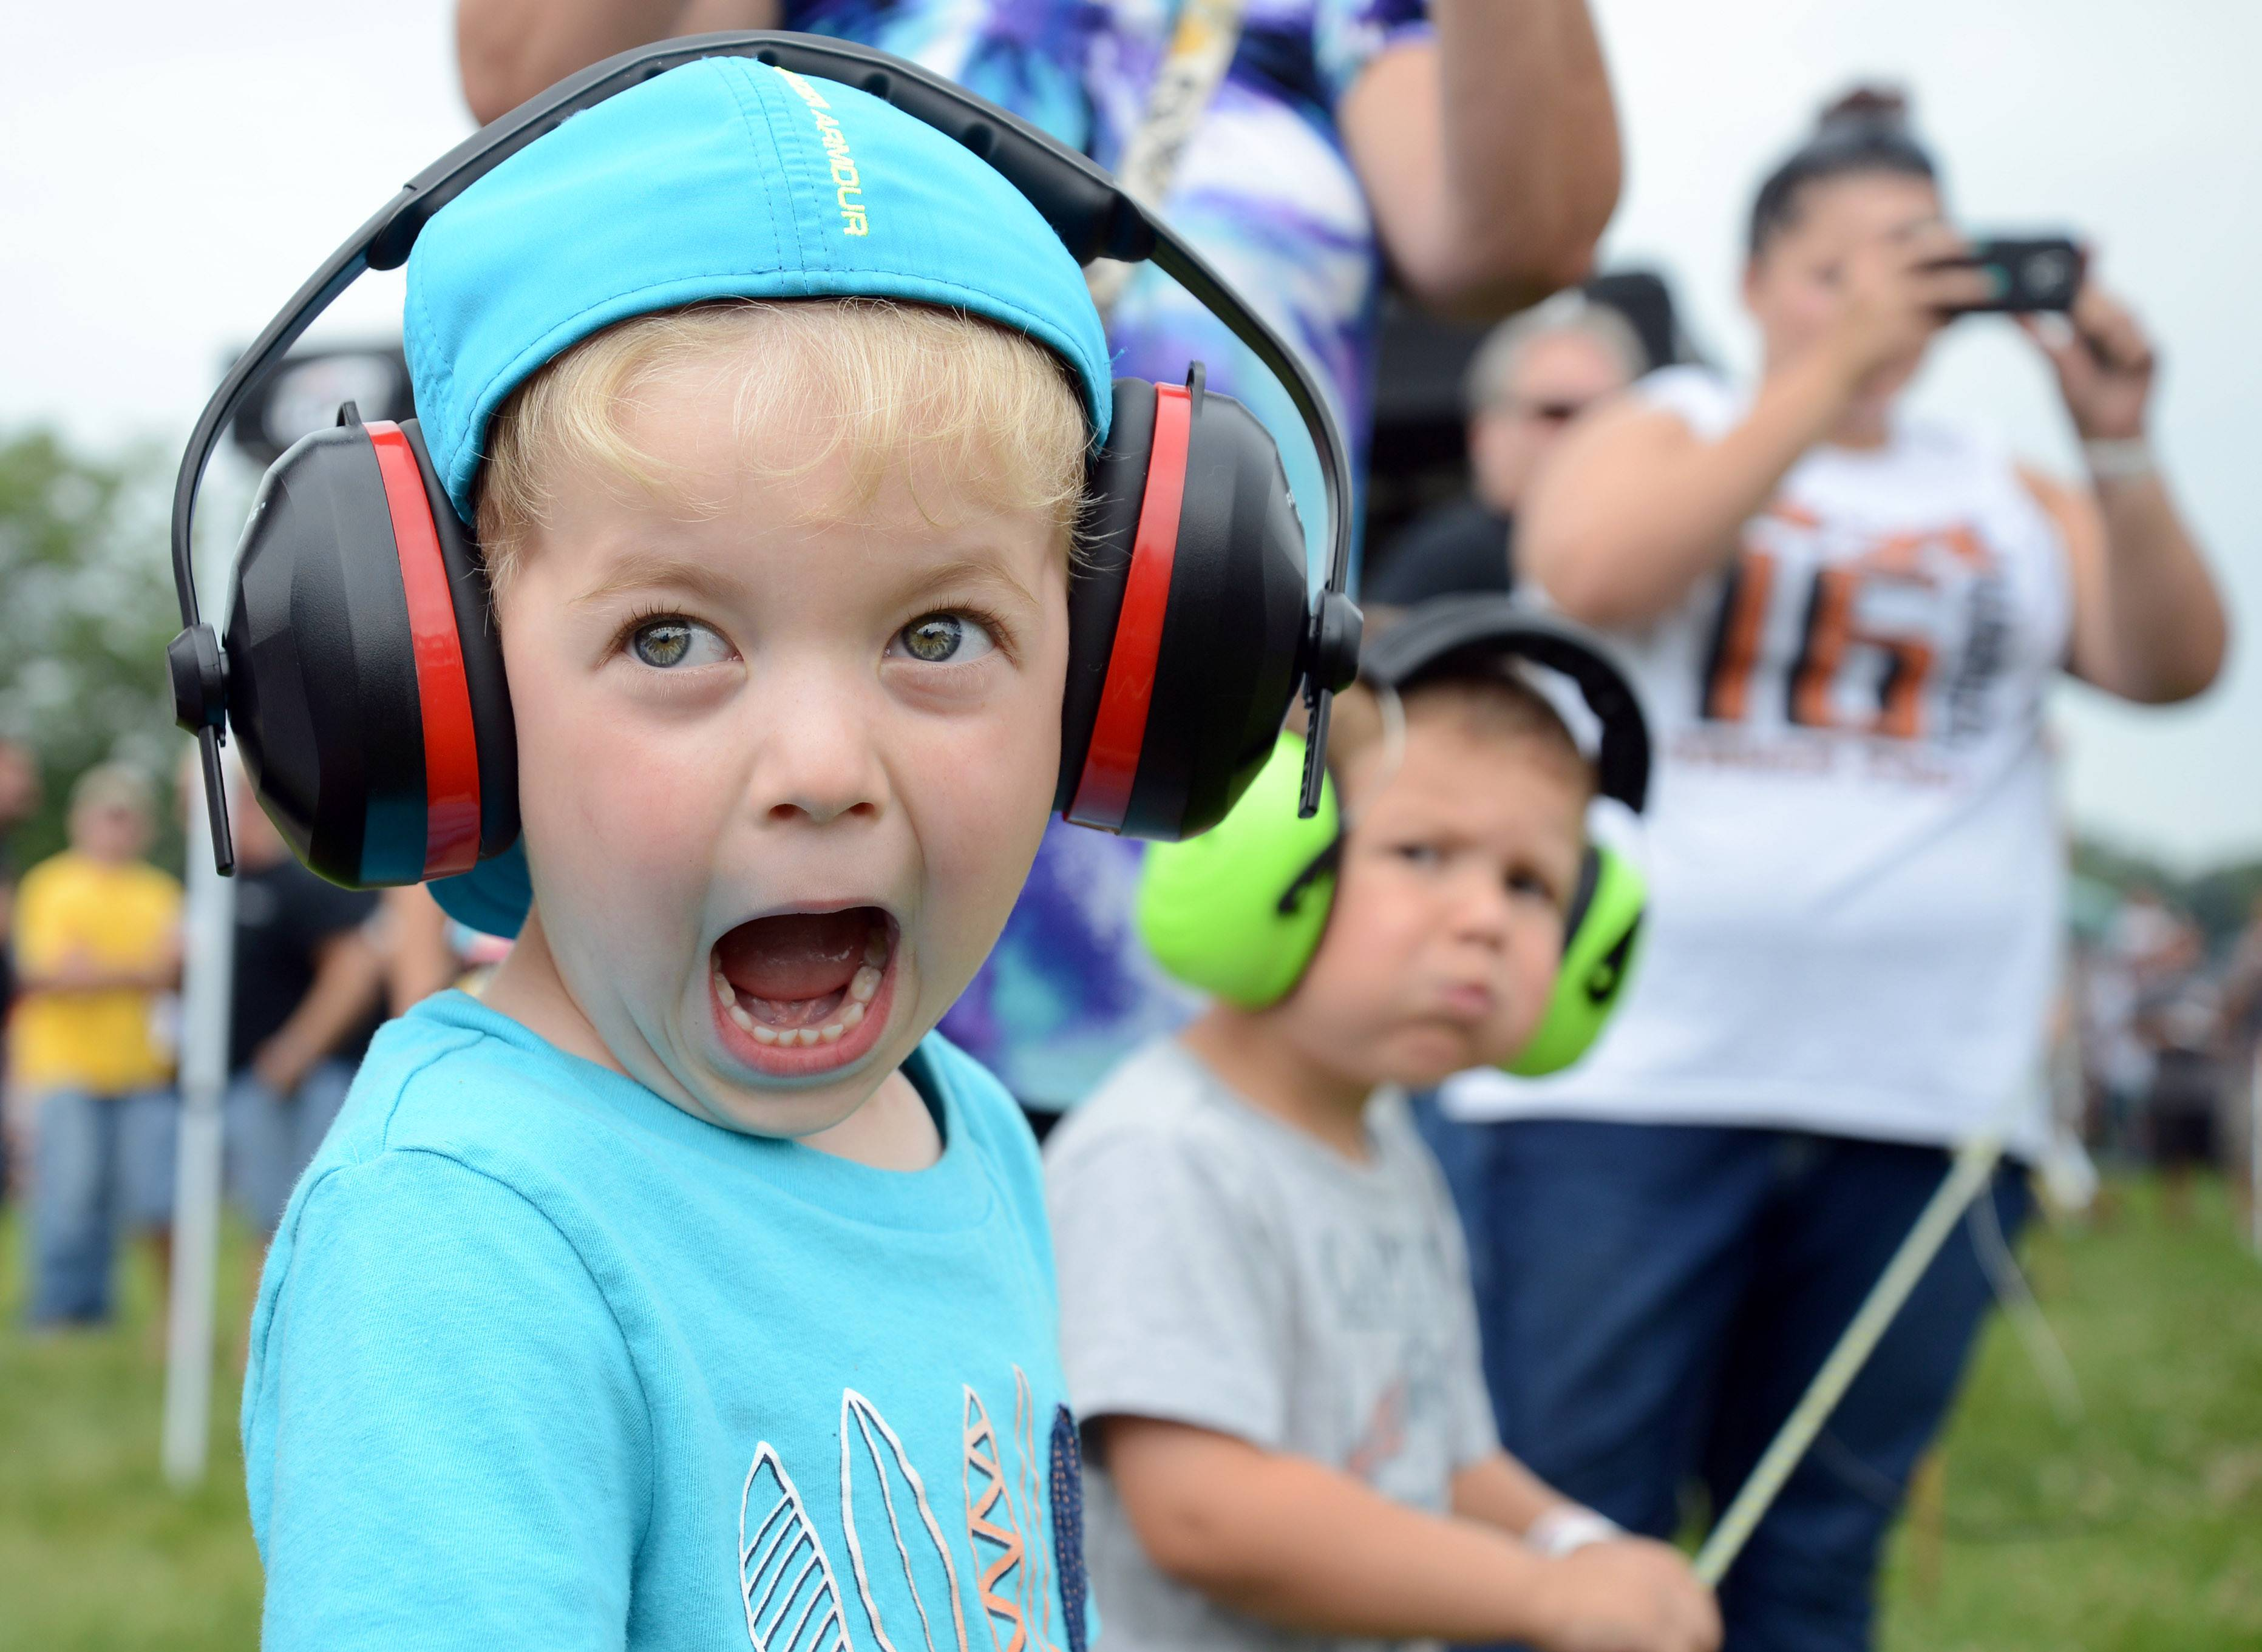 Rustin Angerola, 3, of Elburn reacts as a truck in the 6,500 AS 4 x 4 class takes off from the starting line at the truck and tractor pull at Elburn Days Saturday. His friend and neighbor, Hayden Deutsch, 3, is on the right.